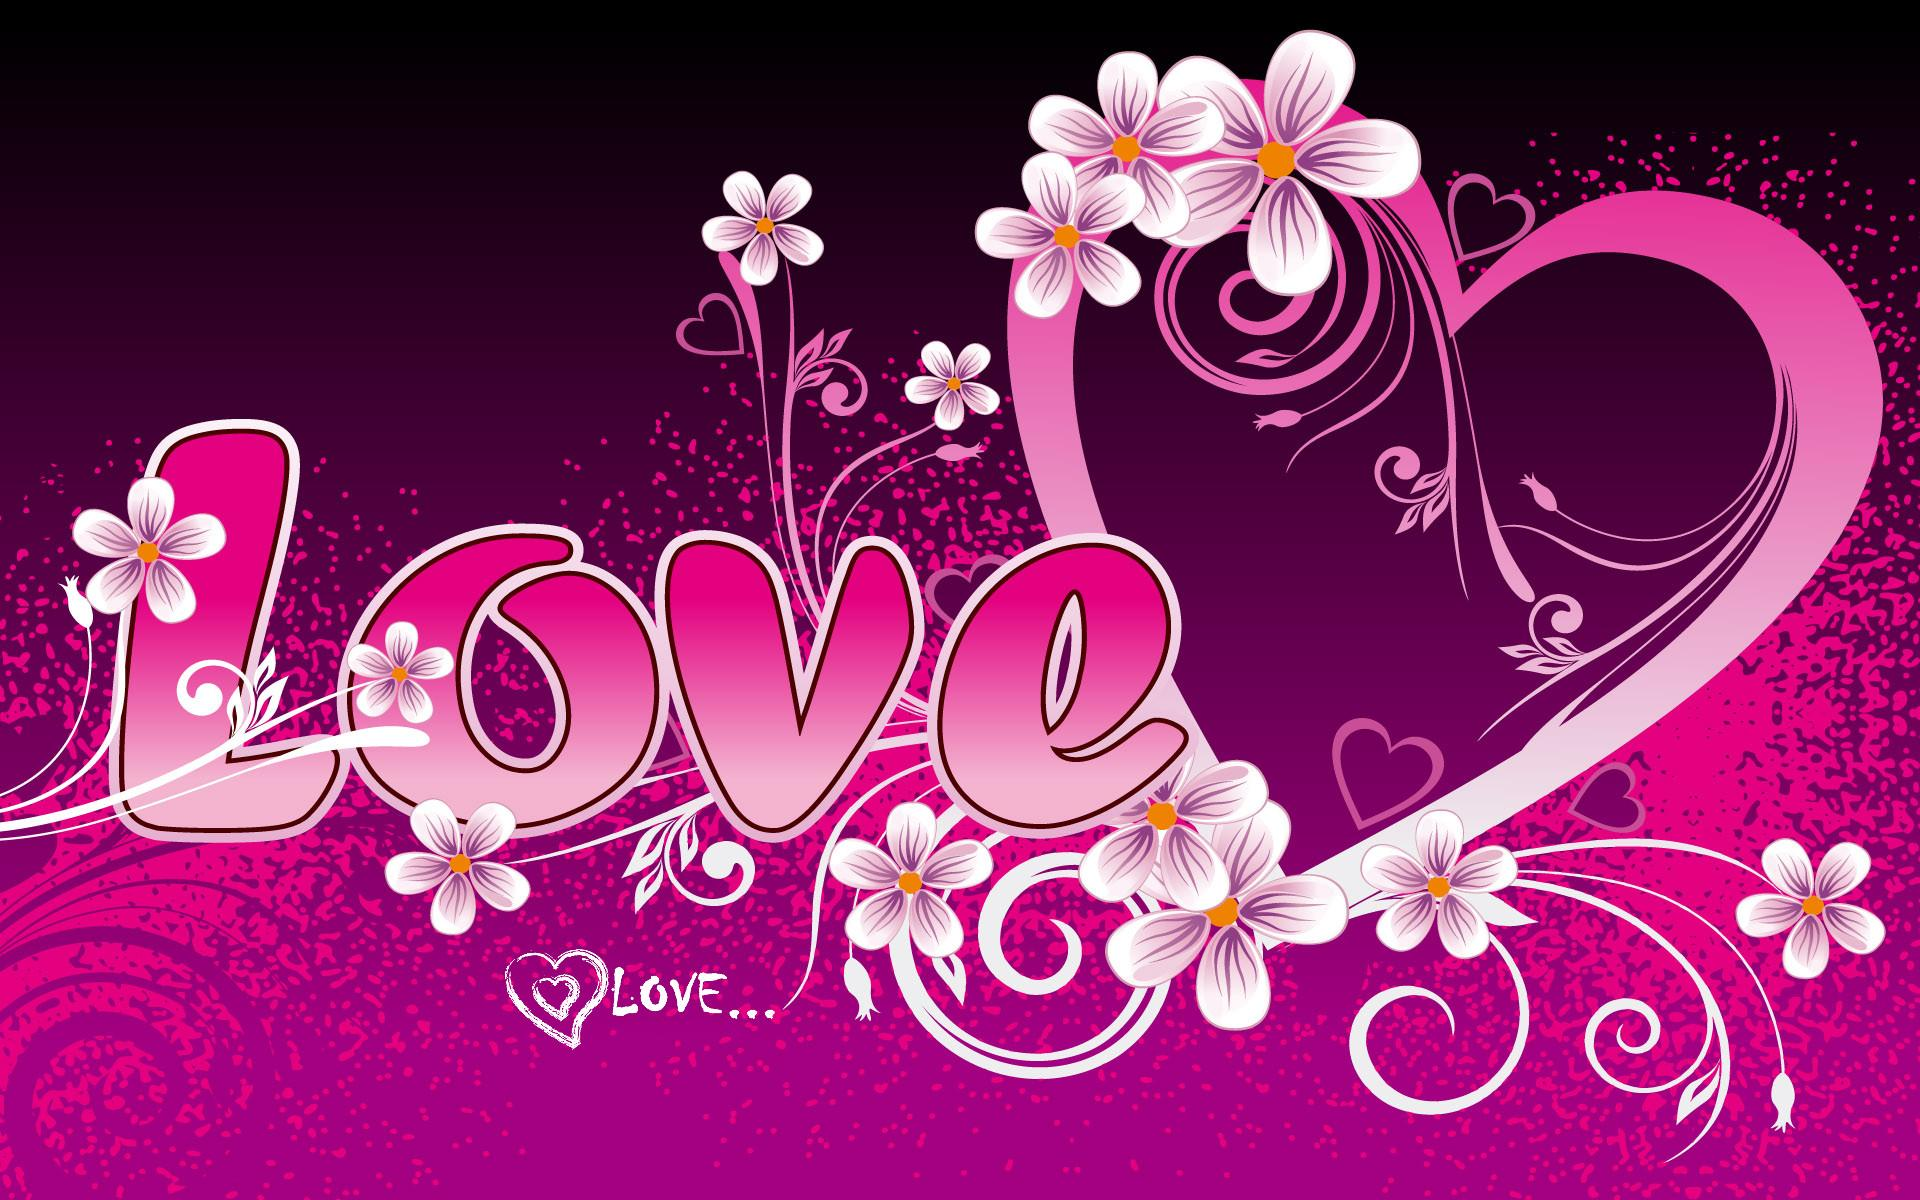 Wallpaper Hearts Love